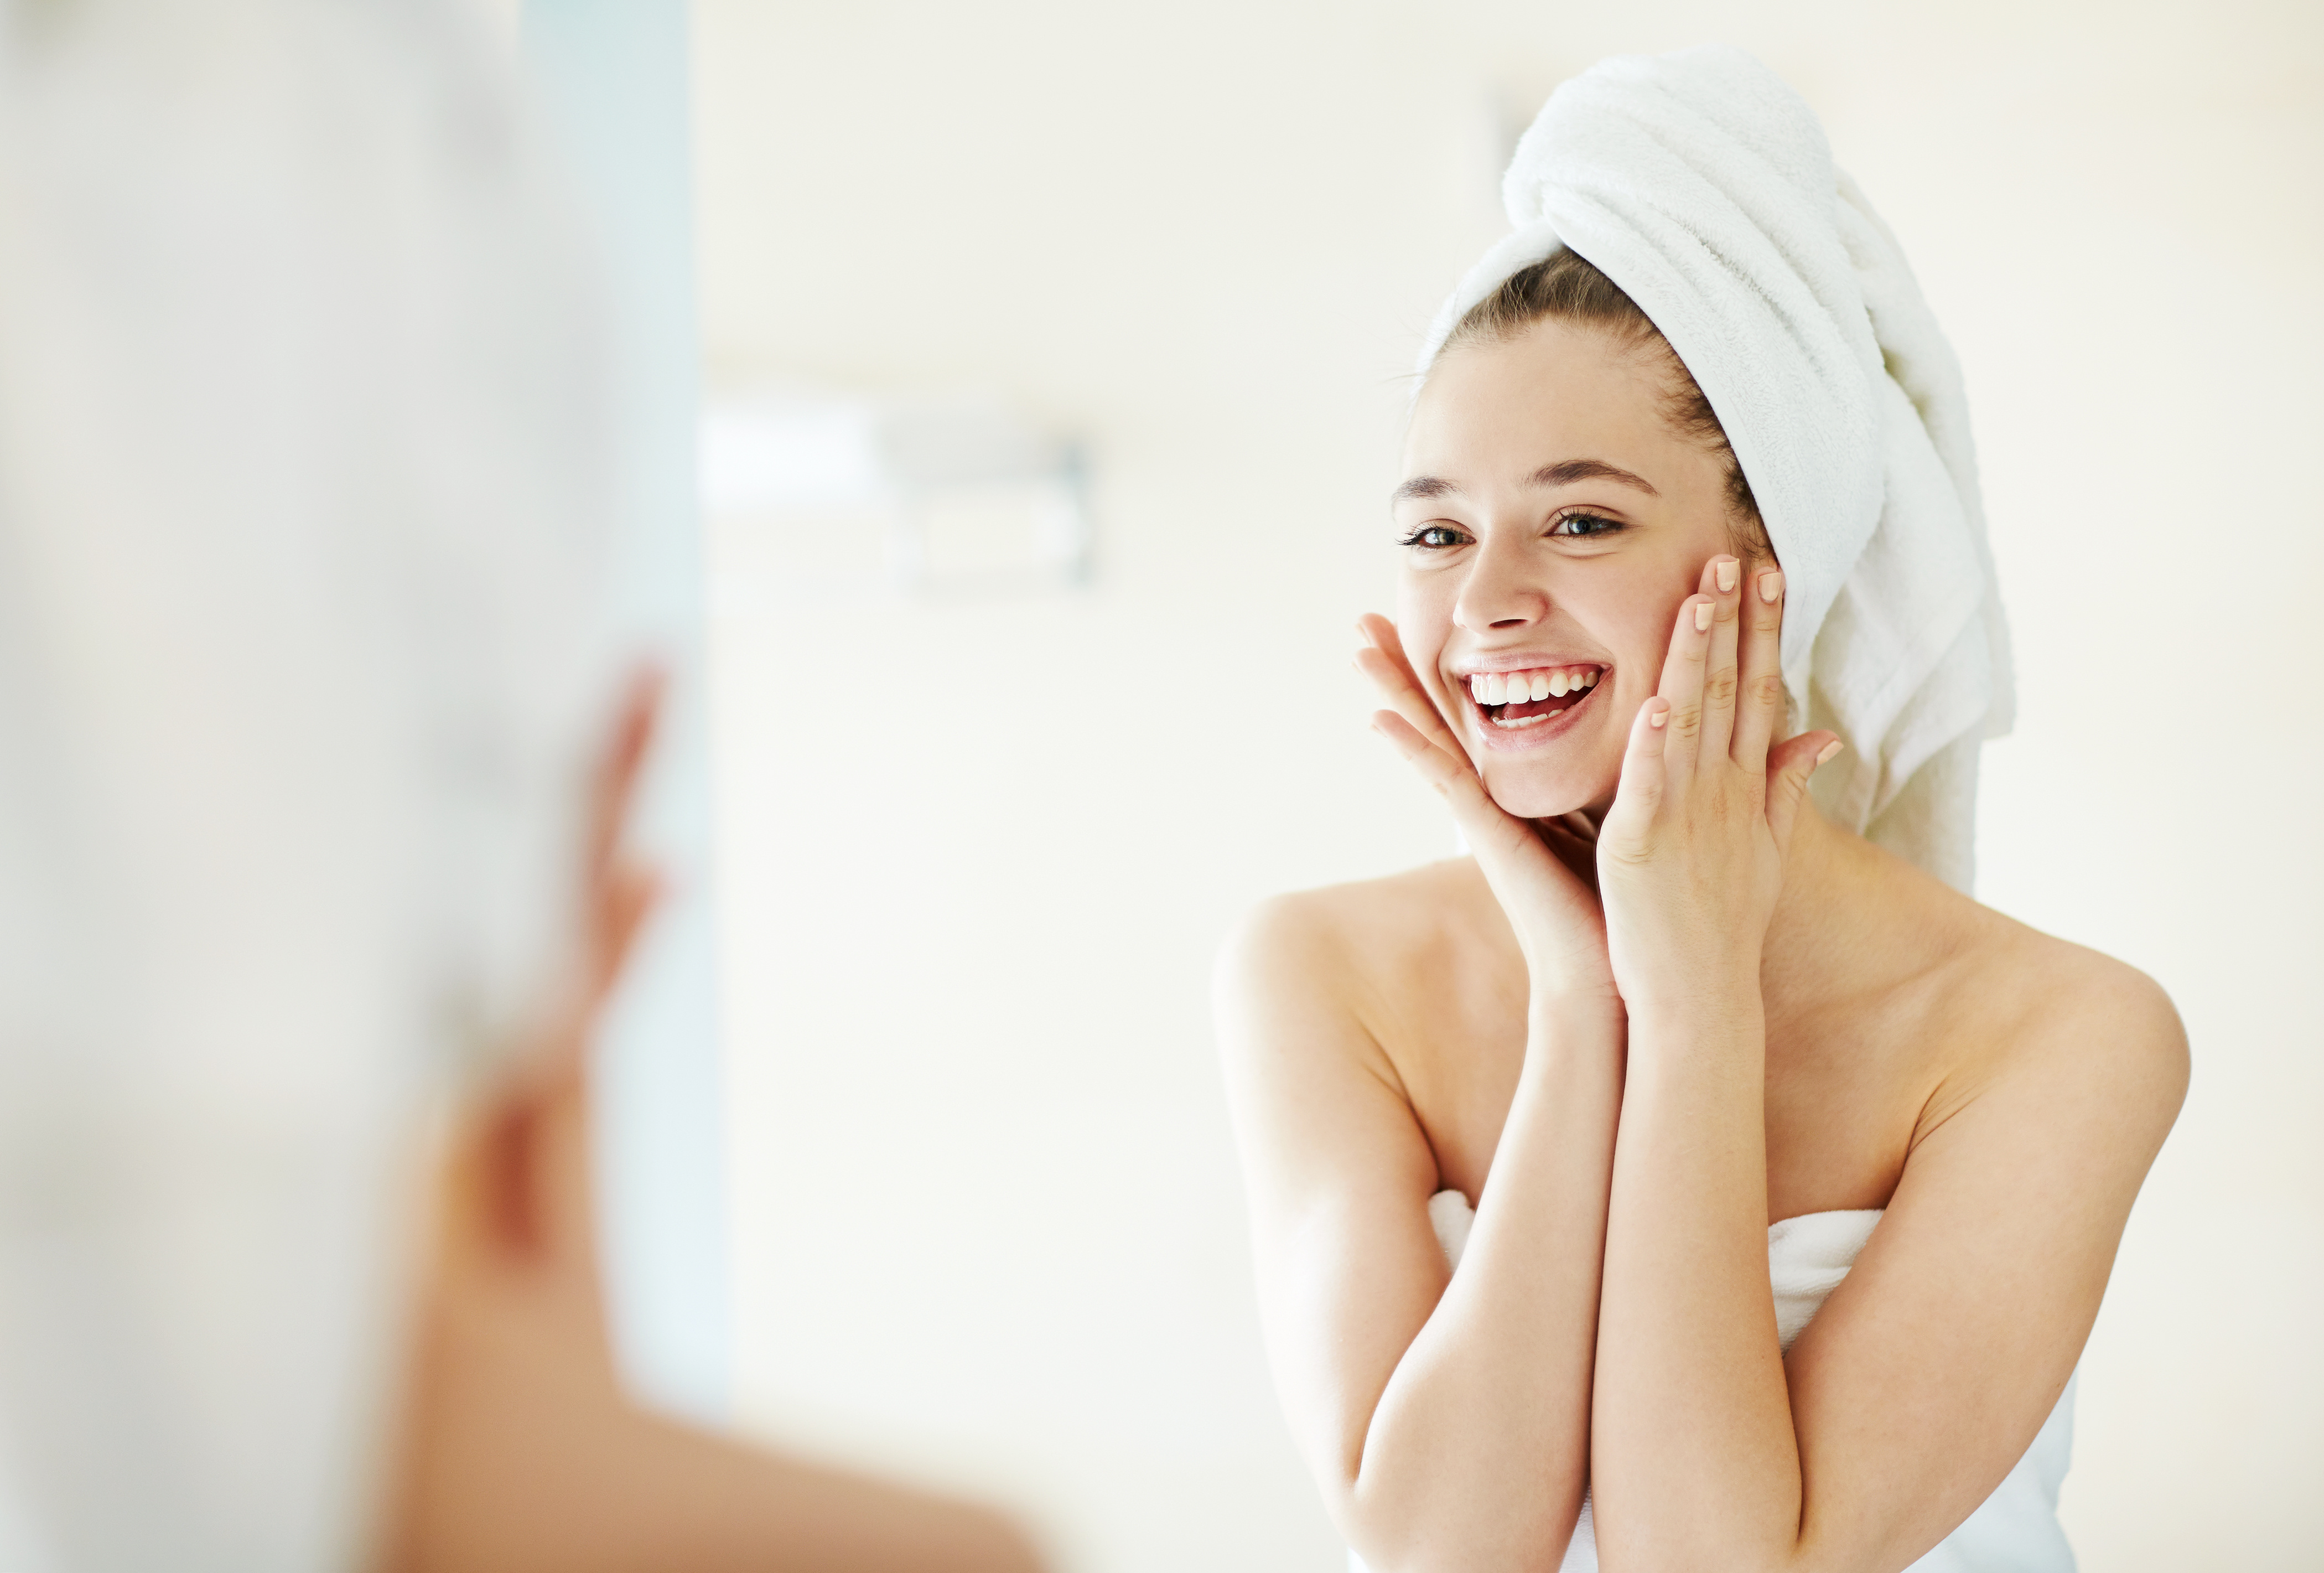 Happy girl looking at her face in mirror after bath